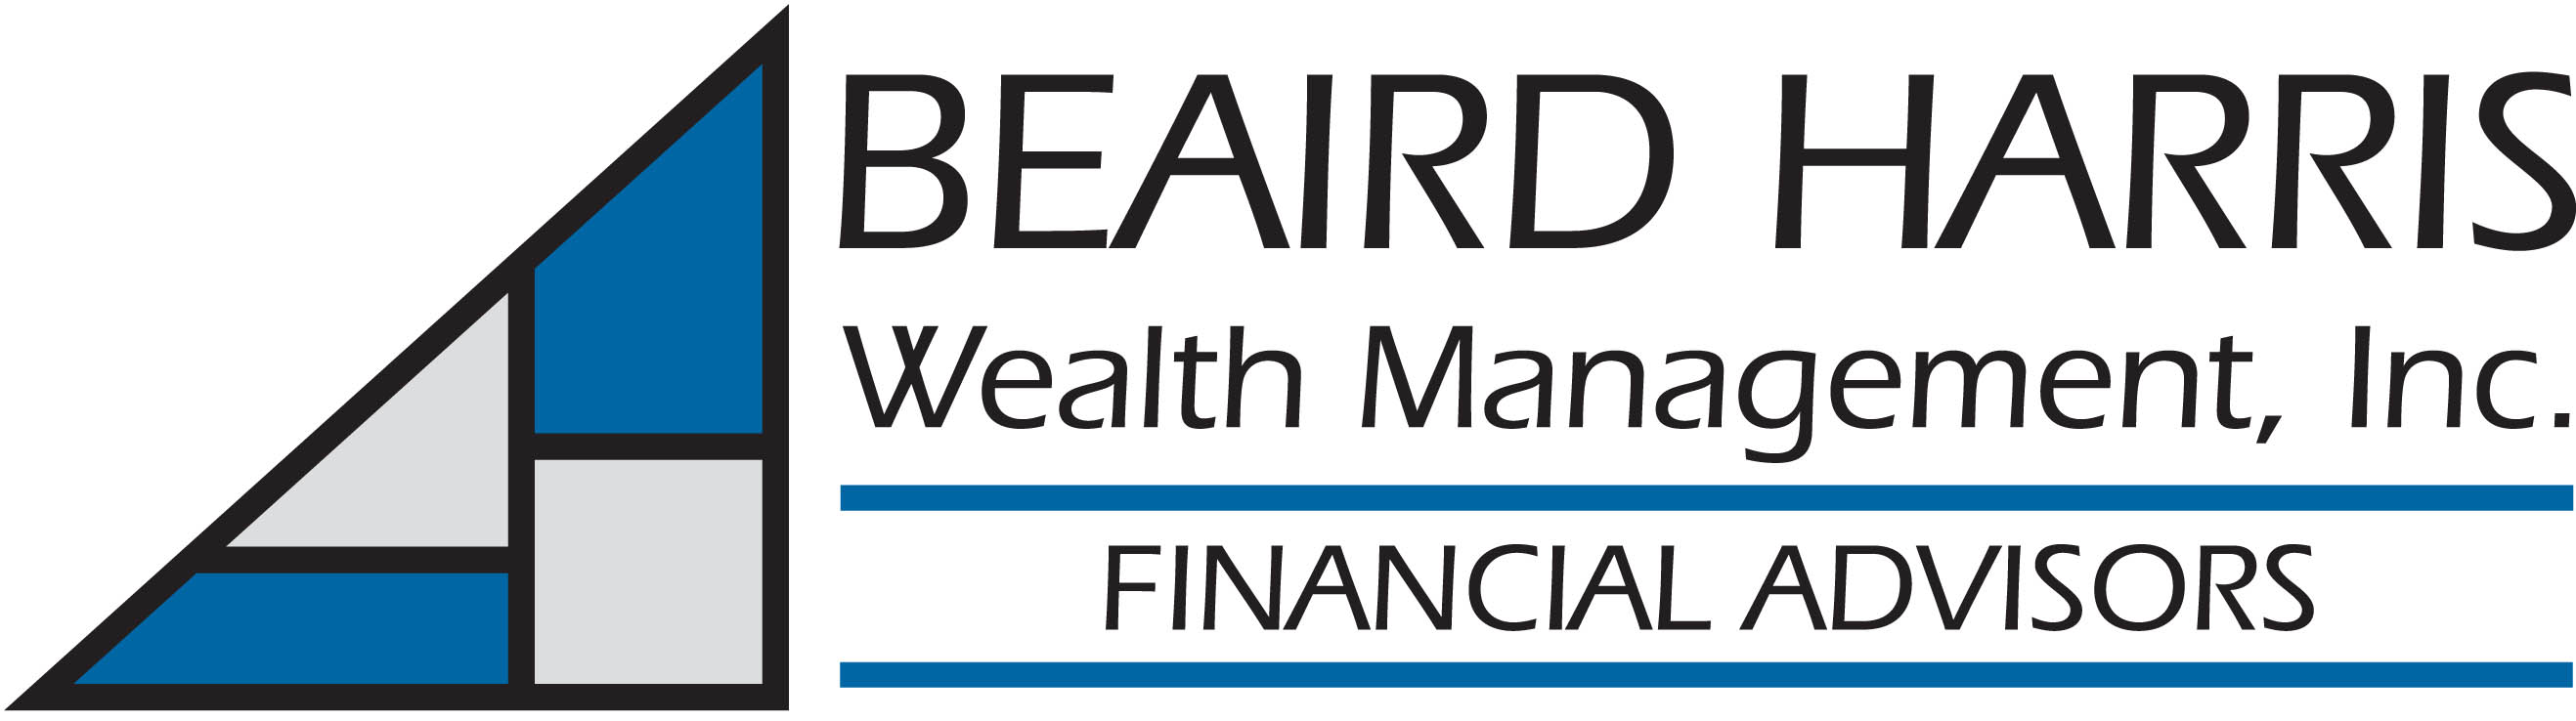 Beaird Harris Wealth Management, Inc.